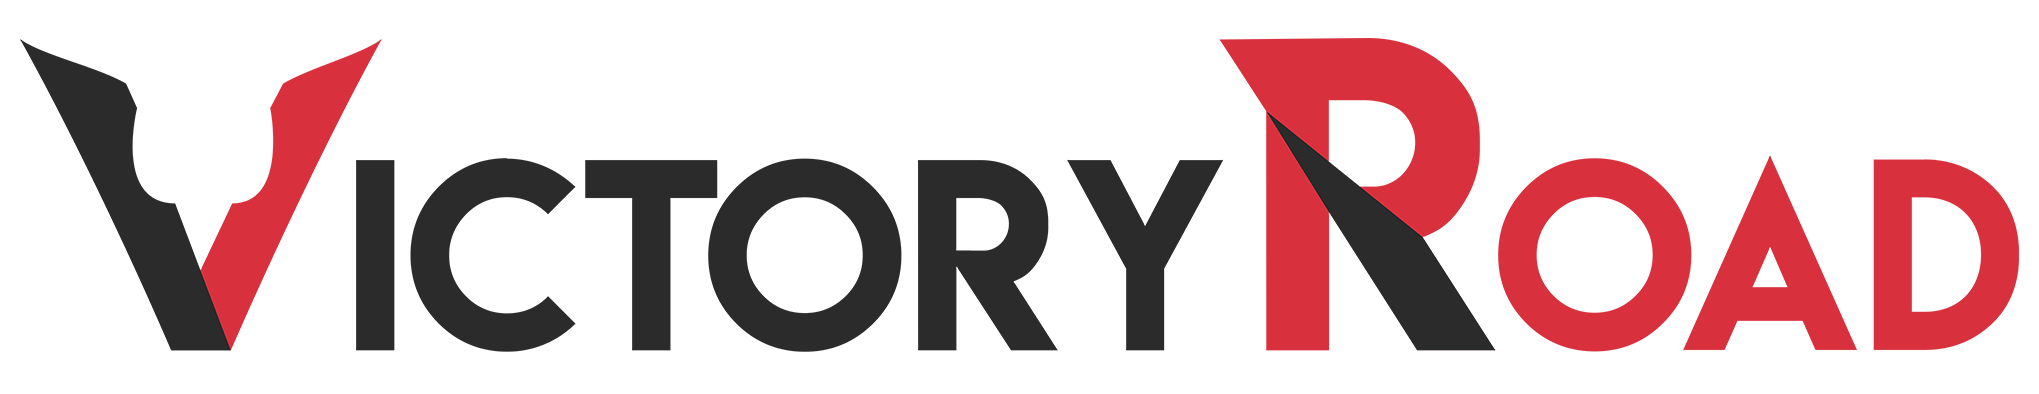 Logo Victory Road